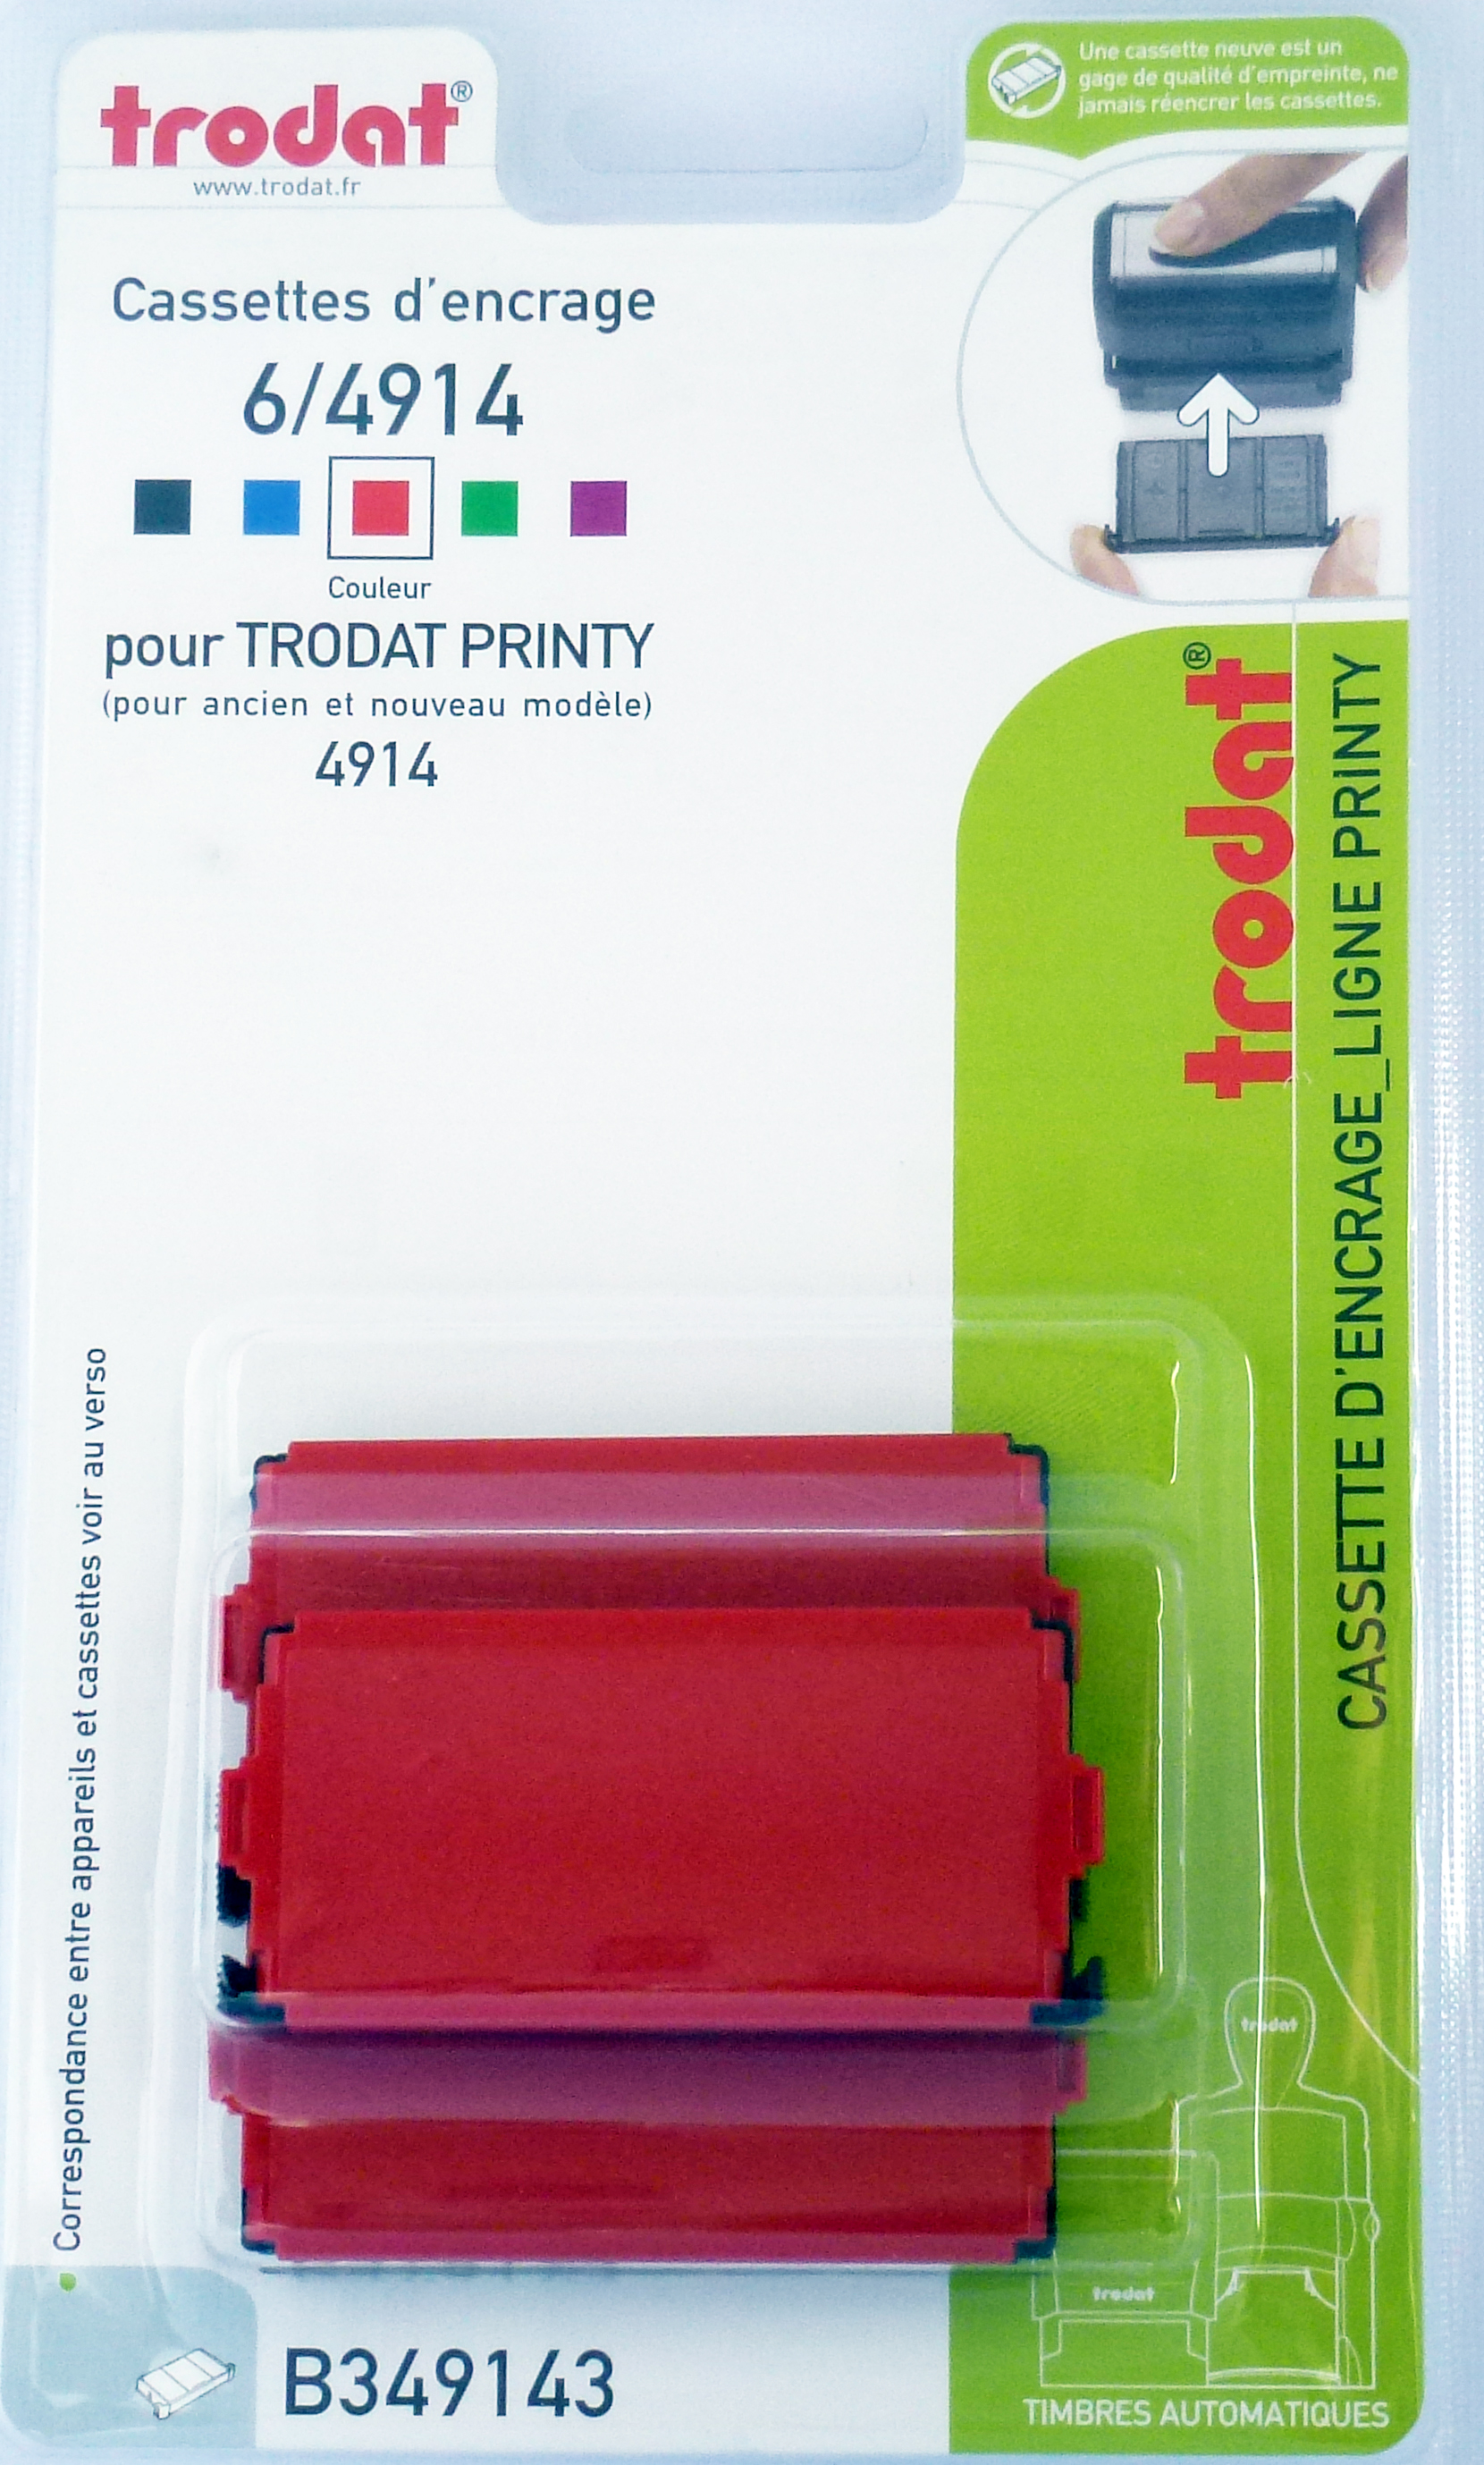 Trodat - 3 Encriers 6/4914 recharges pour tampon Printy 4914 - rouge